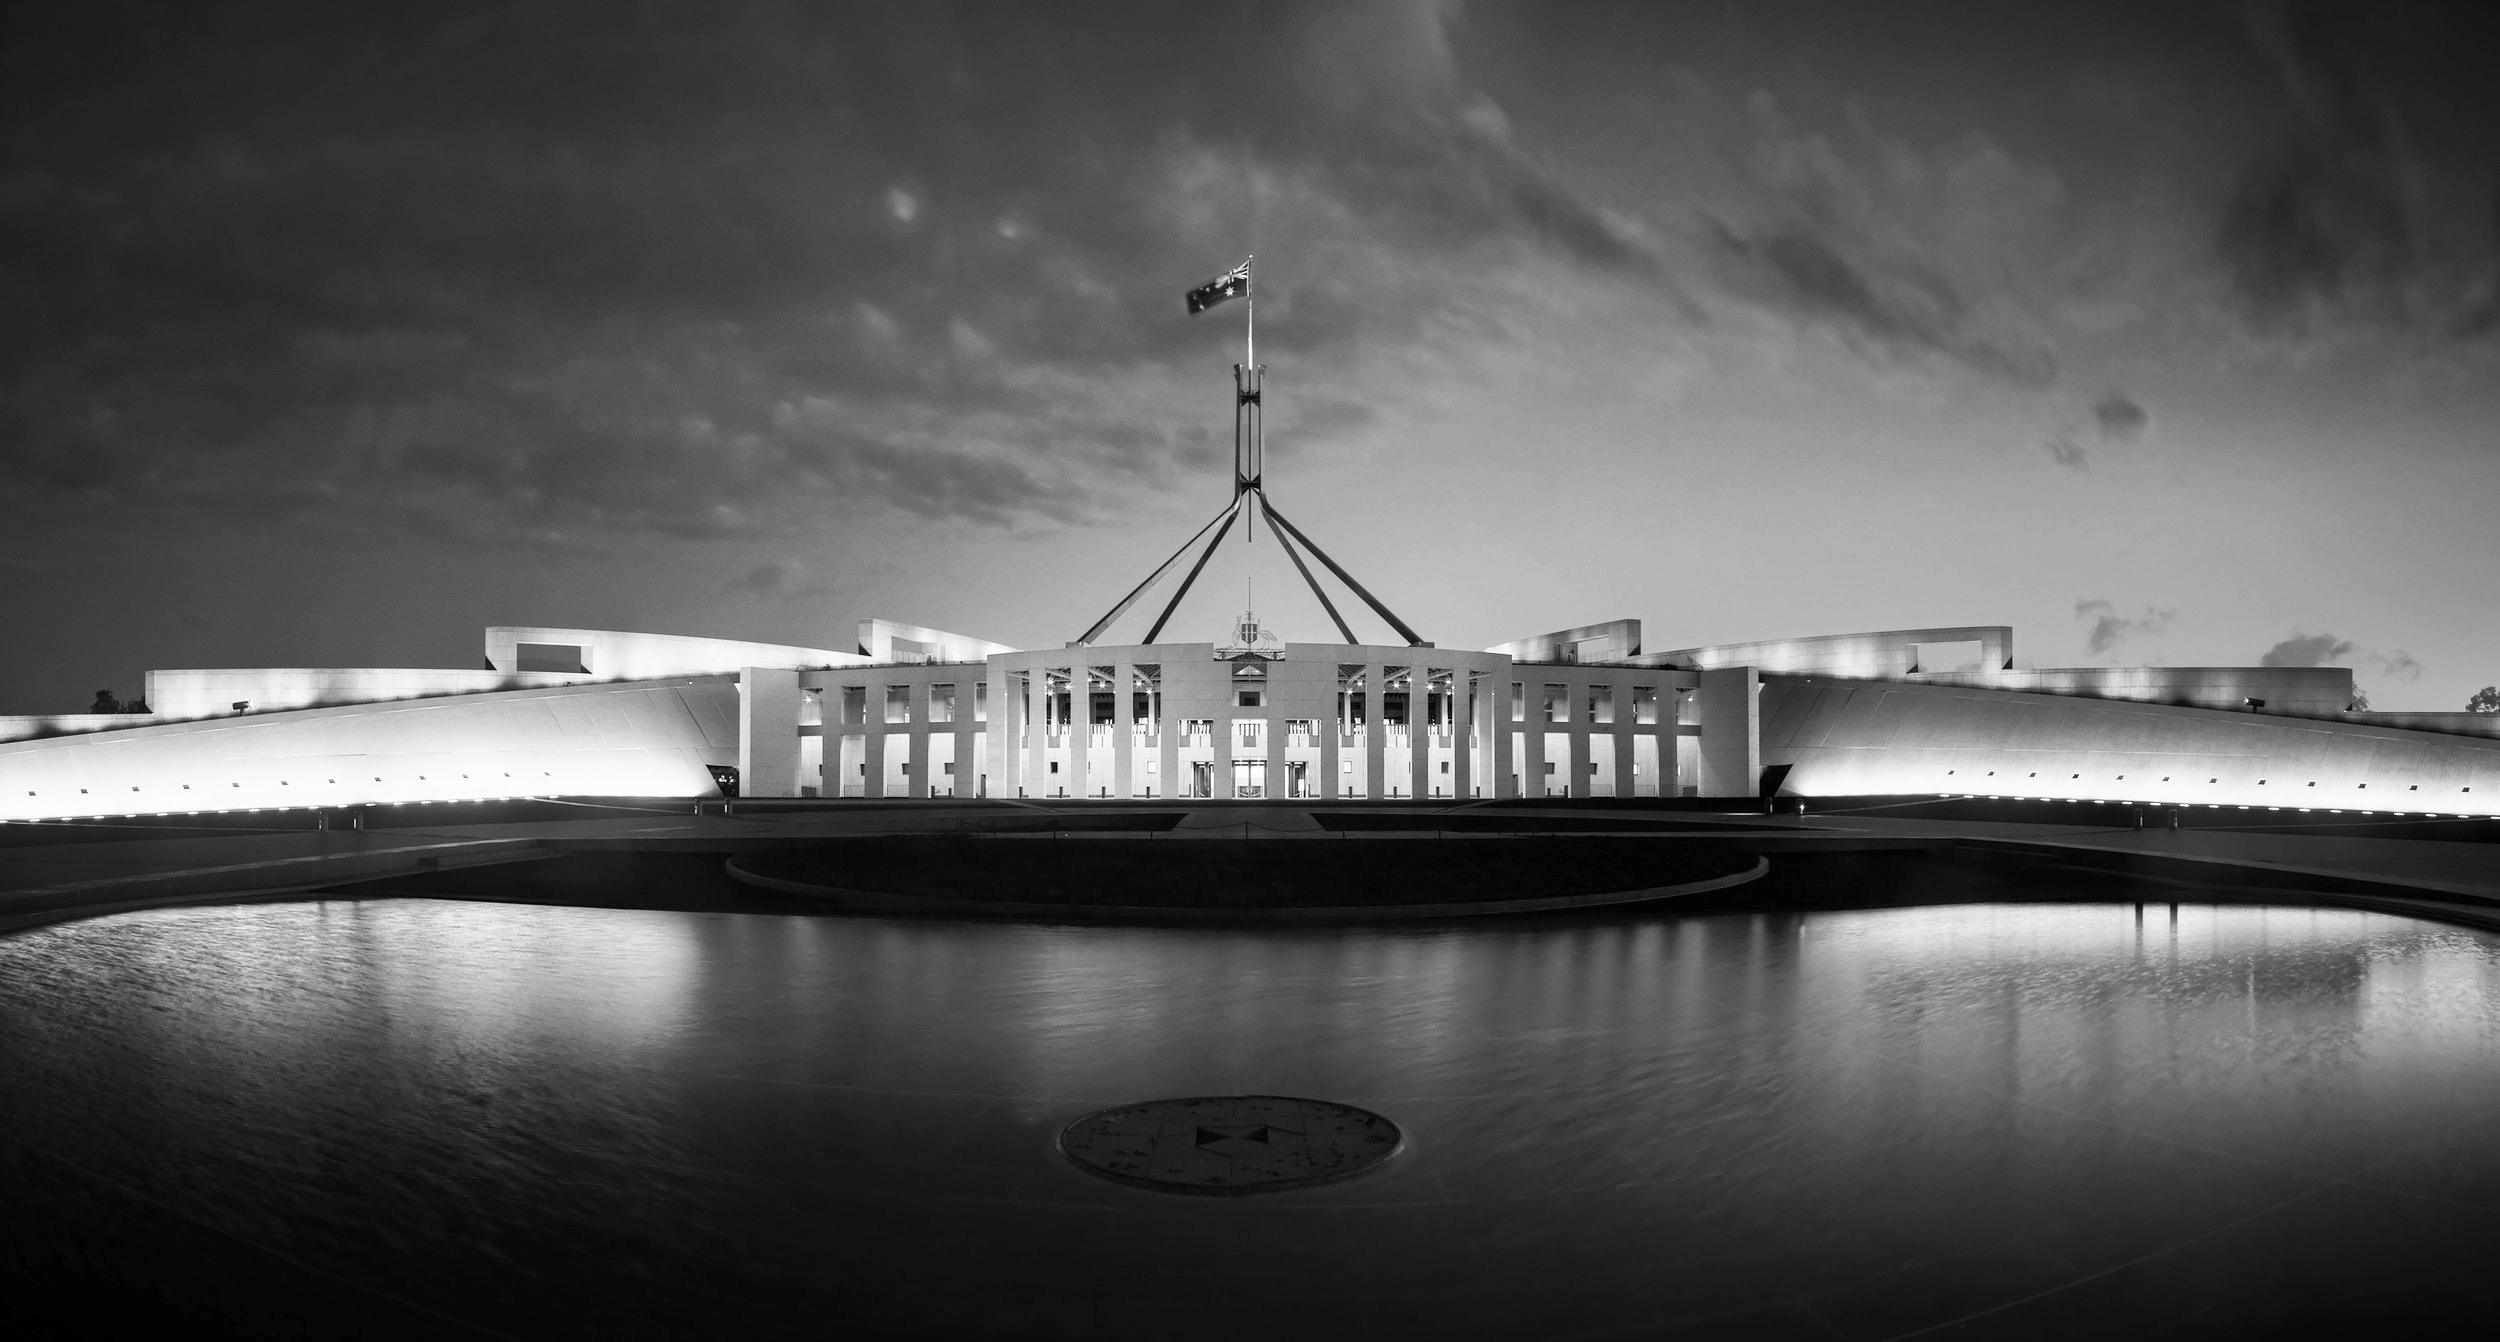 Government relations   With former politicians and political staffers from both the ALP and Liberal Party among our team, we are uniquely placed to offer sound government relations advice at both federal and state levels.